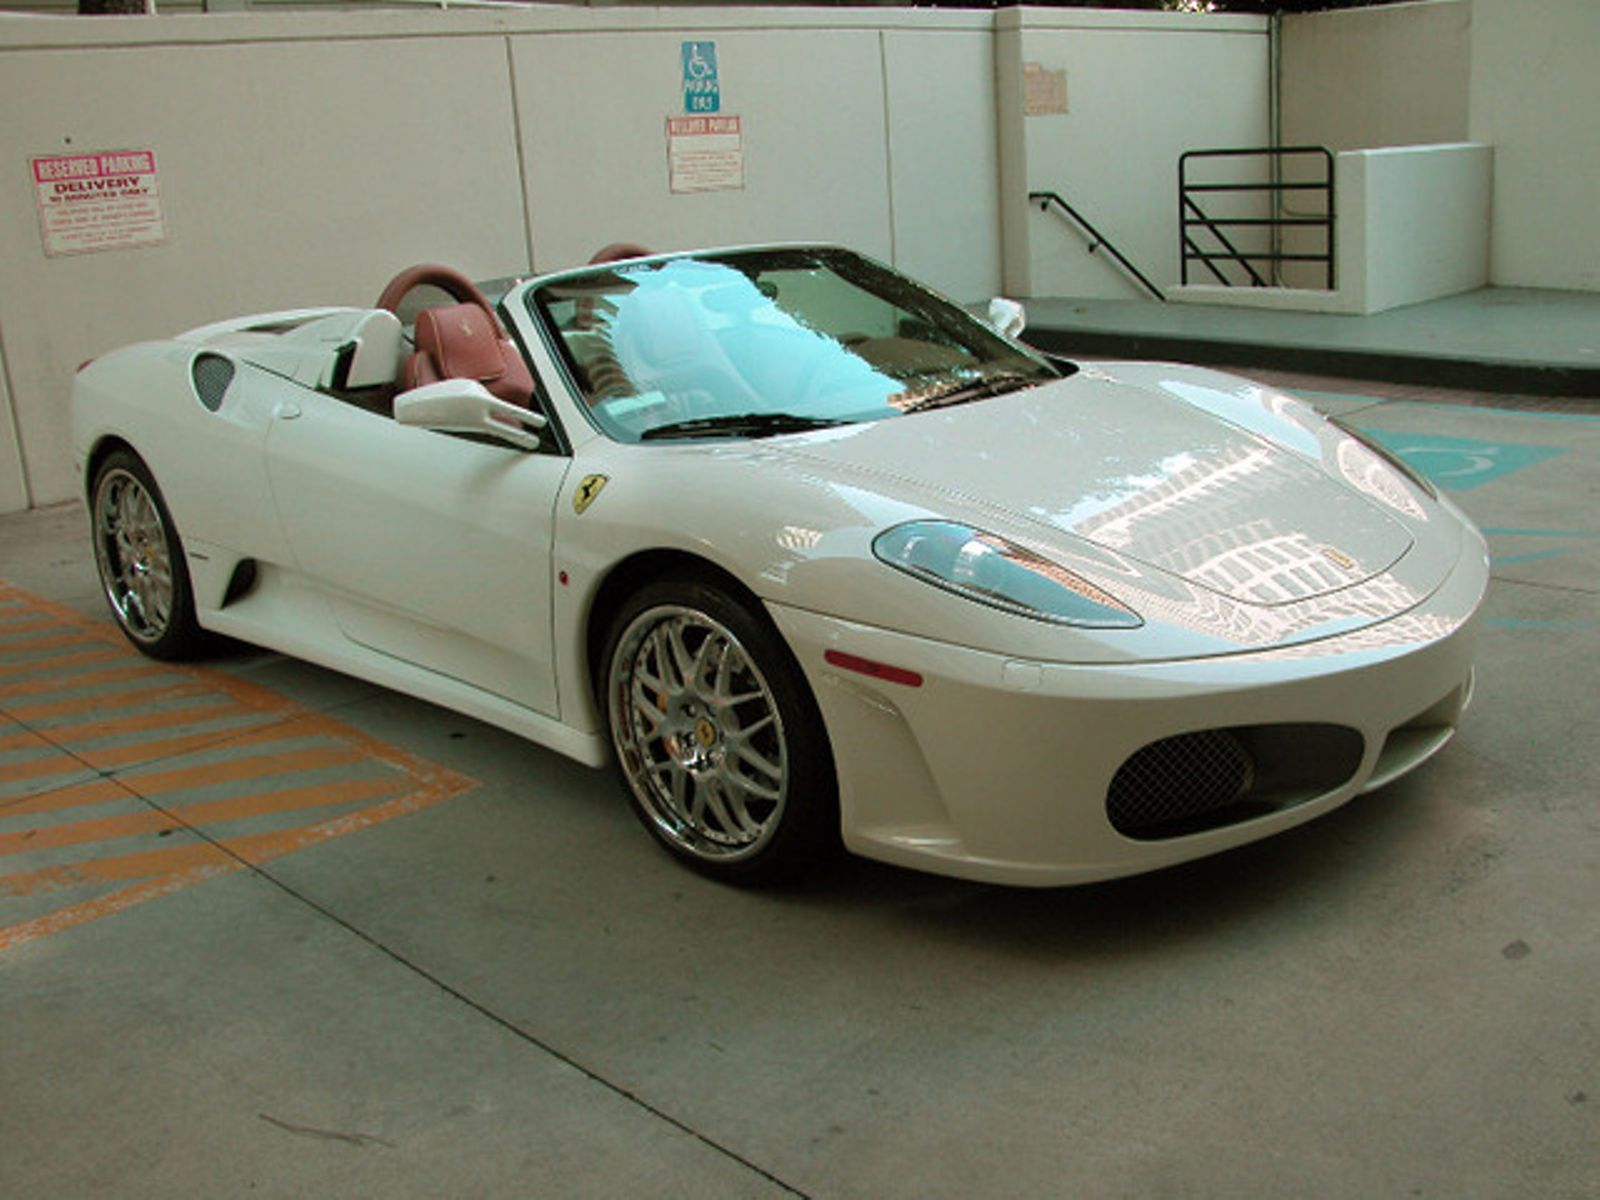 High Quality ... 2007 Ferrari F430 Spider F1 Gearbox One Owner Beverly Hills Car City  California Auto Fitness Class ...